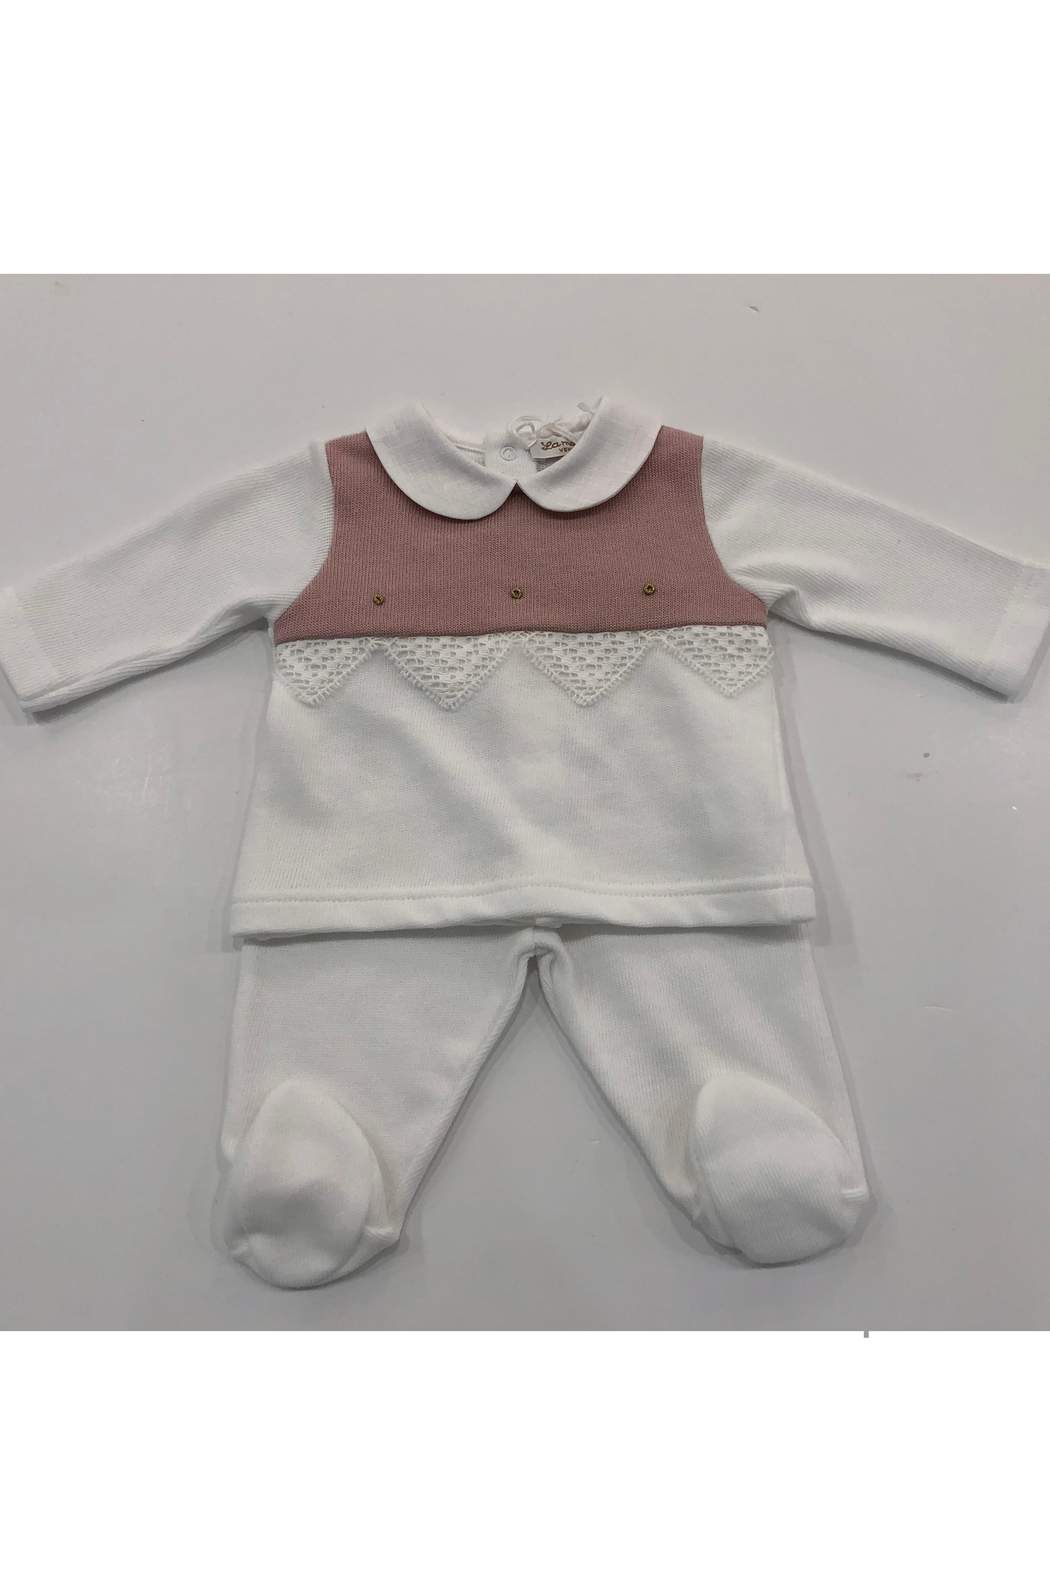 LA MASCOT  La Mascot Infant 2 piece knit set with lace edge - Made in Italy - Front Cropped Image